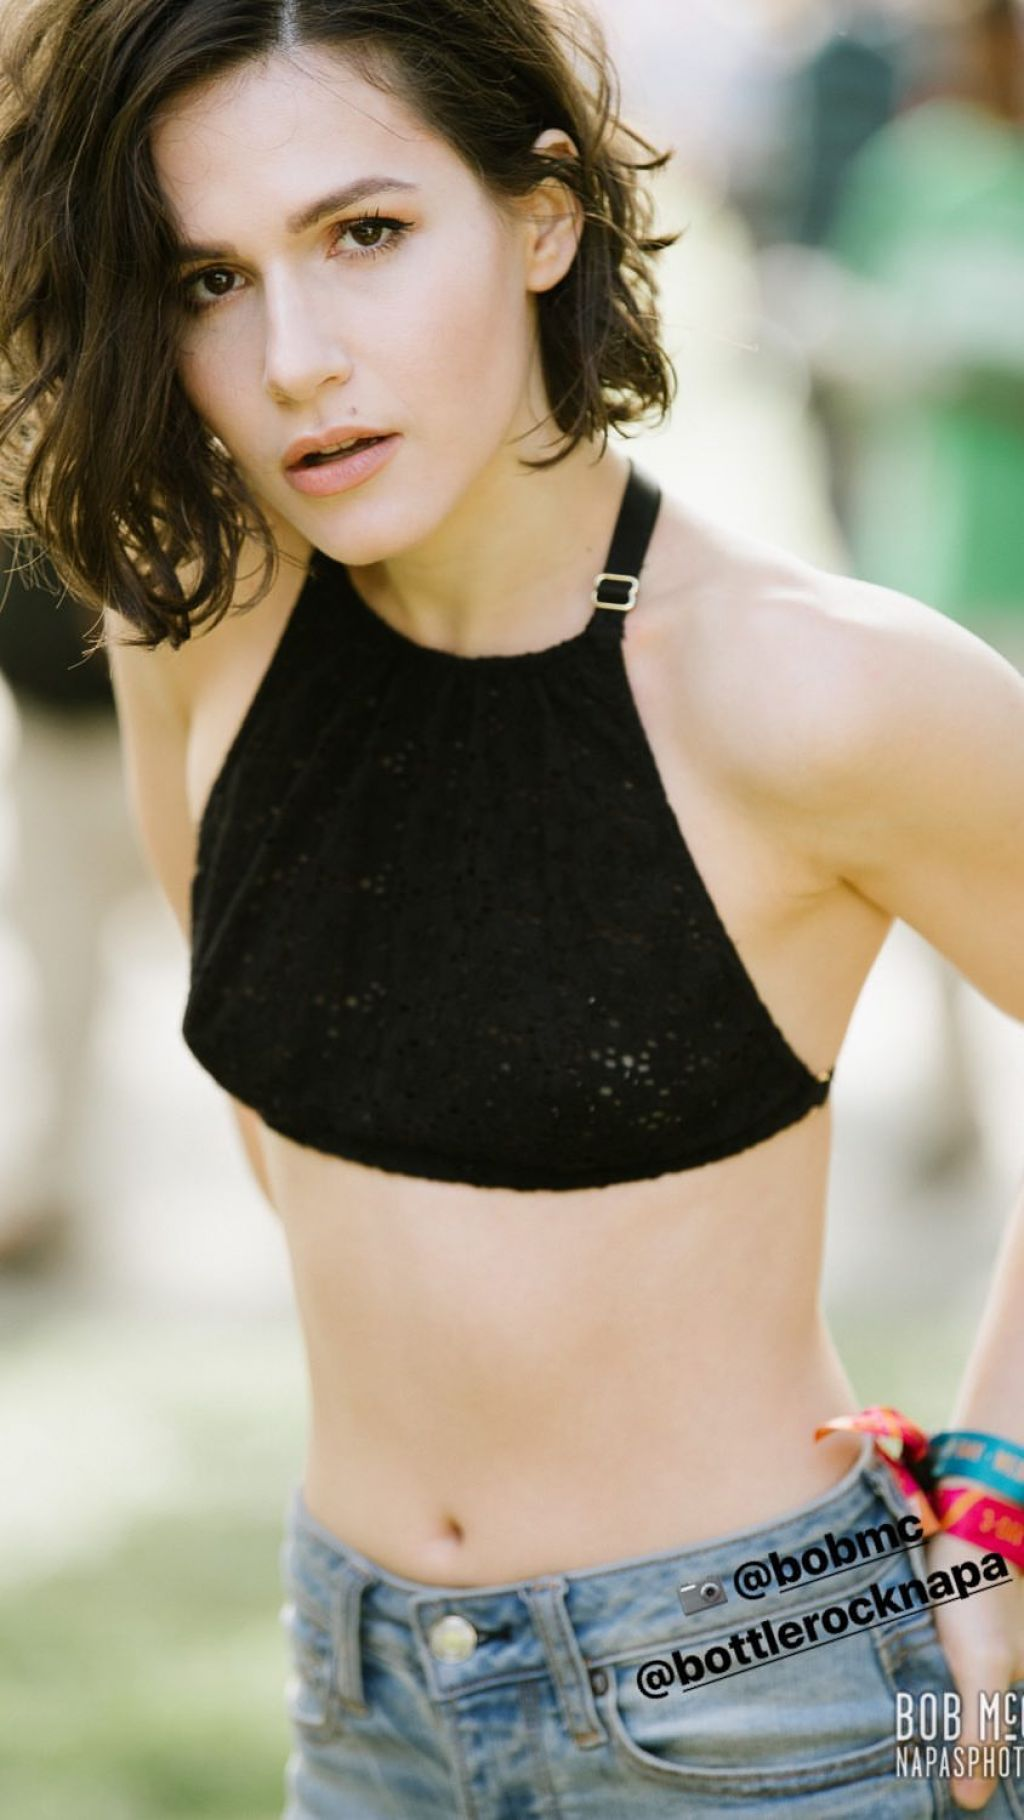 Celebrity Erin Sanders nudes (88 foto and video), Topless, Paparazzi, Boobs, braless 2015